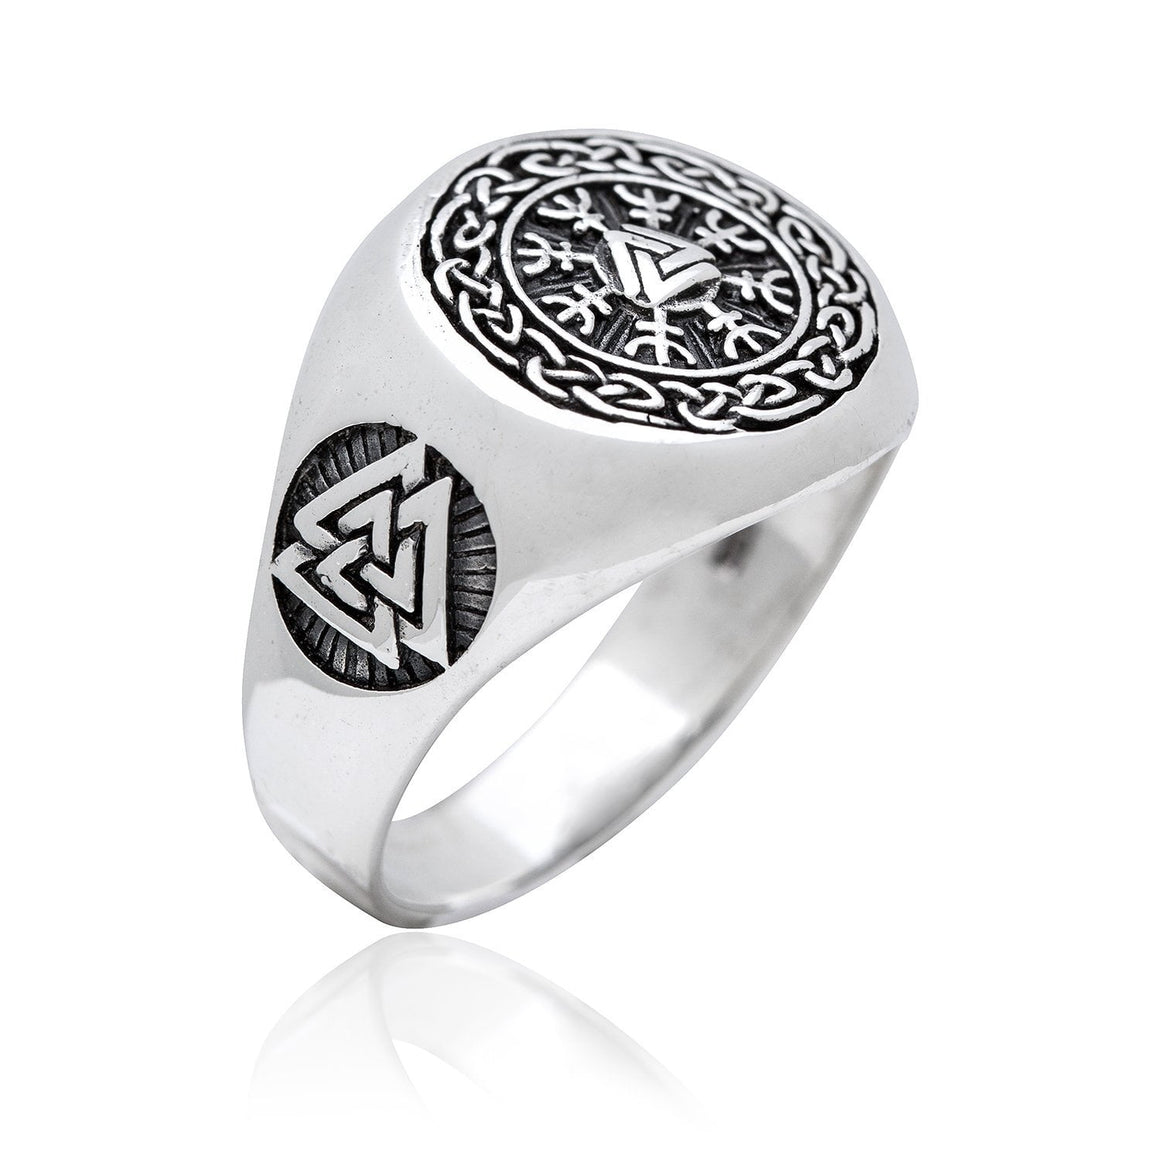 925 Sterling Silver Valknut Viking Helm of Awe Aegishjalmur Ring - SilverMania925